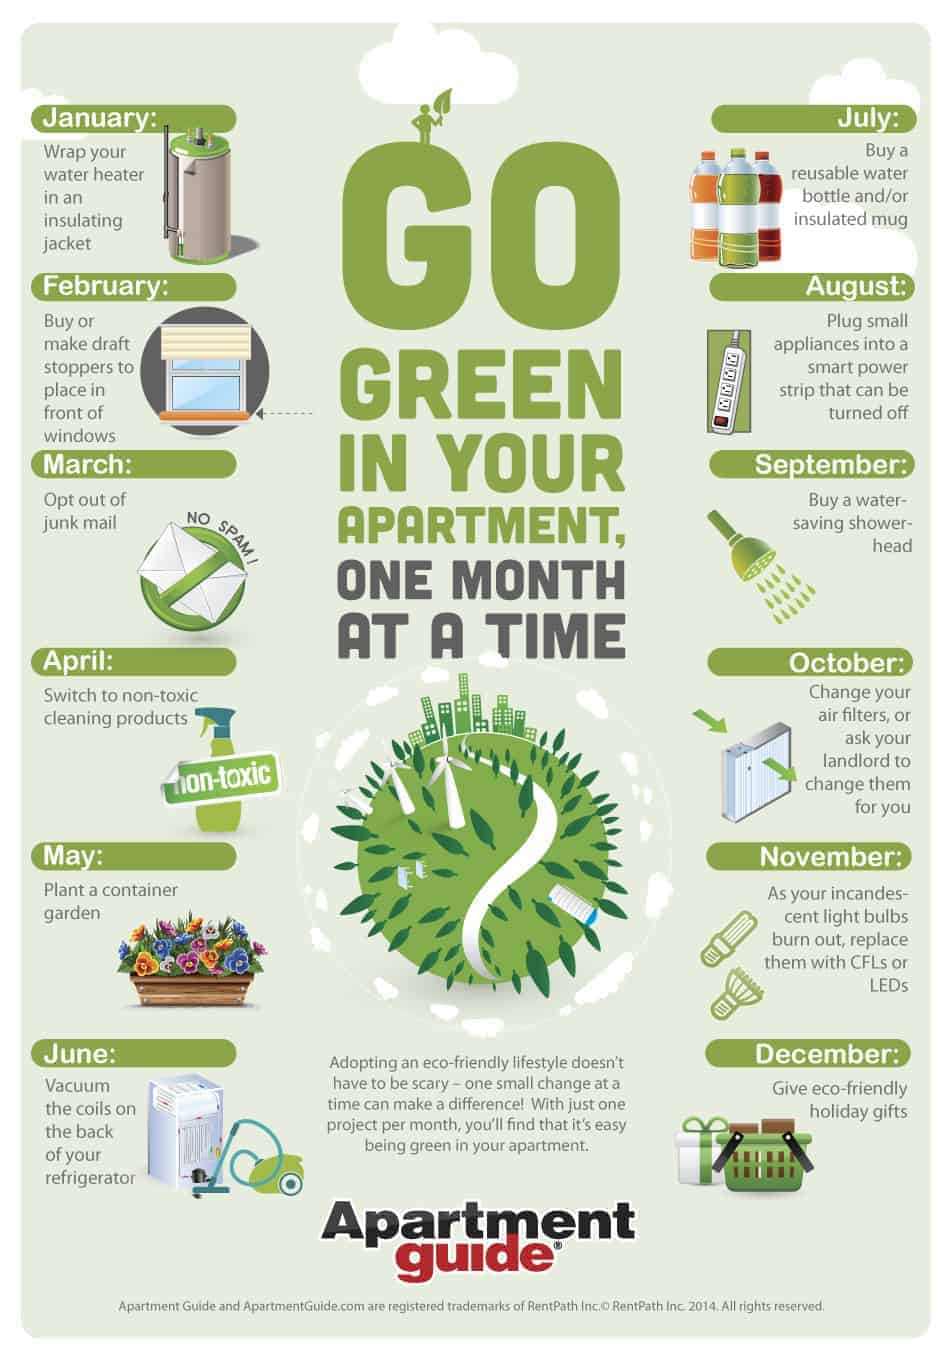 go green in your apartment month by month infographic